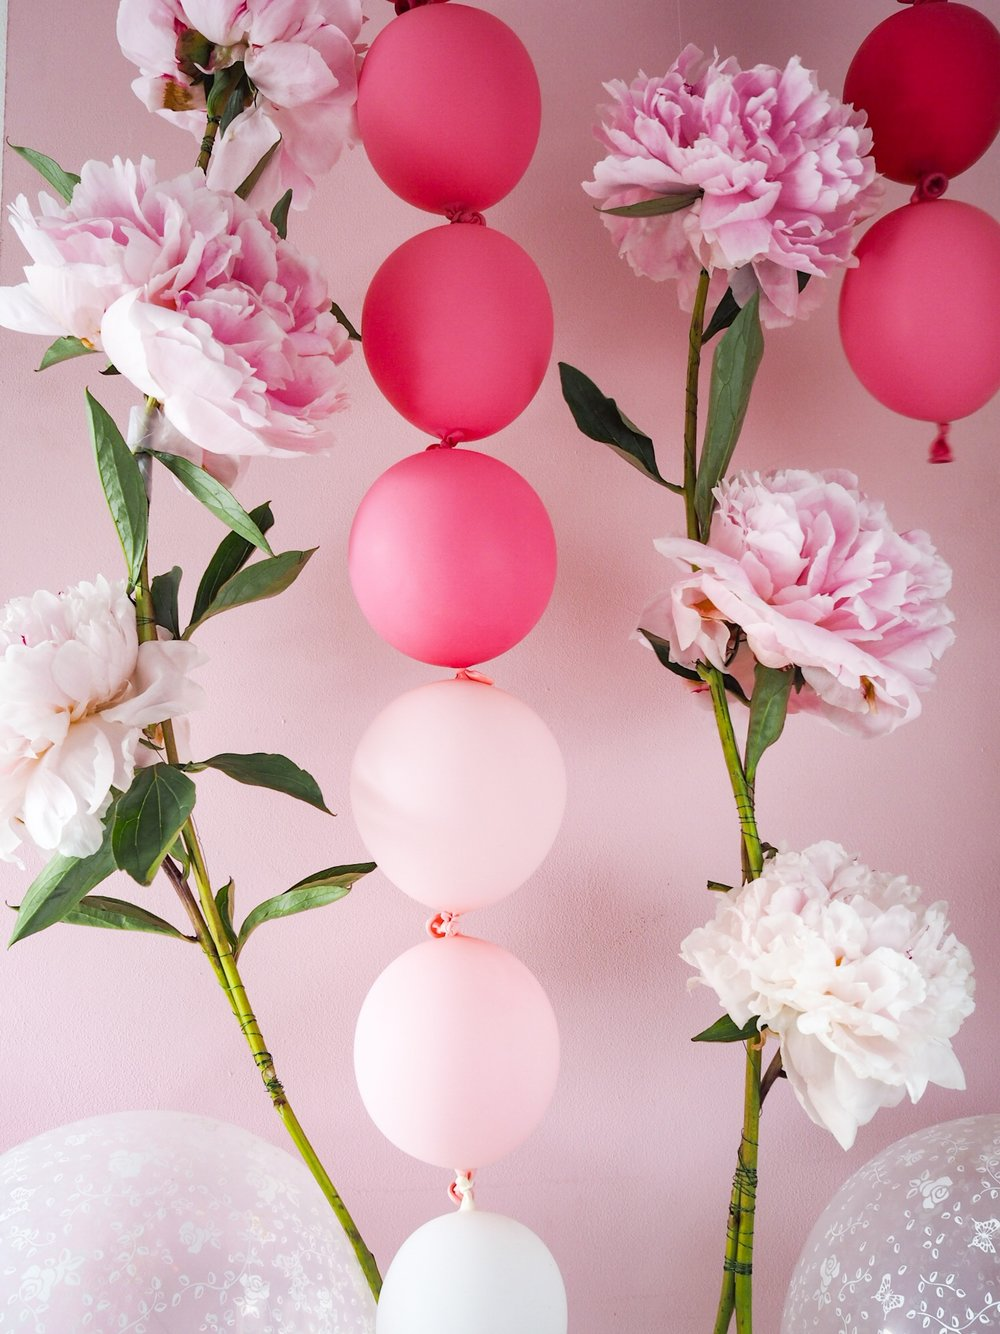 Why not try hanging them vertically for a fun backdrop. Here I used our pink ombré garland with some gorgeous peonies to make a super pretty display.